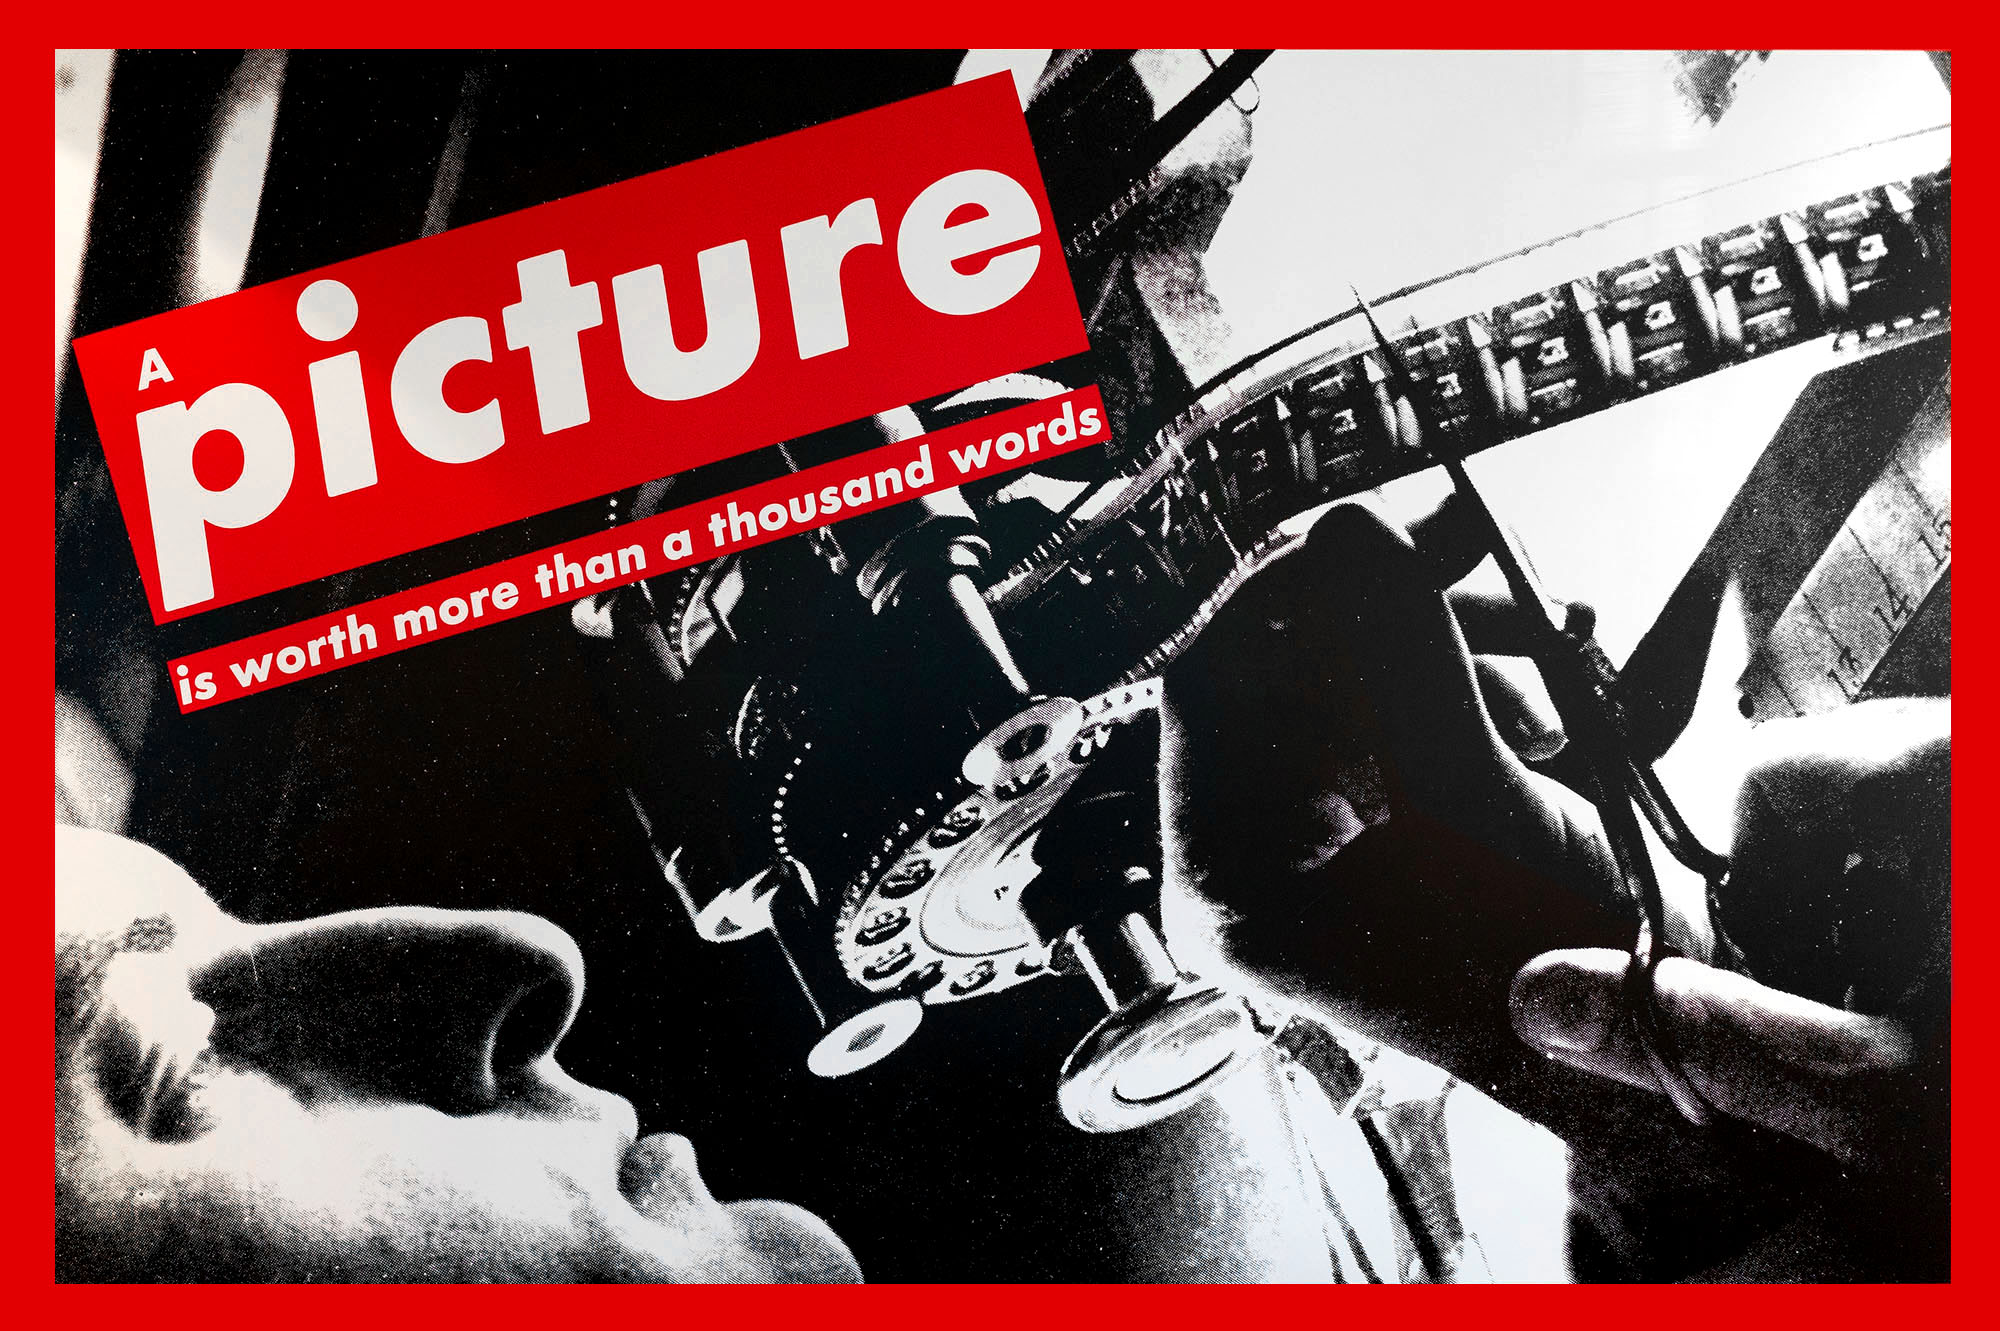 barbara kruger you thrive on mistaken identity art blart barbara kruger untitled a picture is worth more than a thousand words